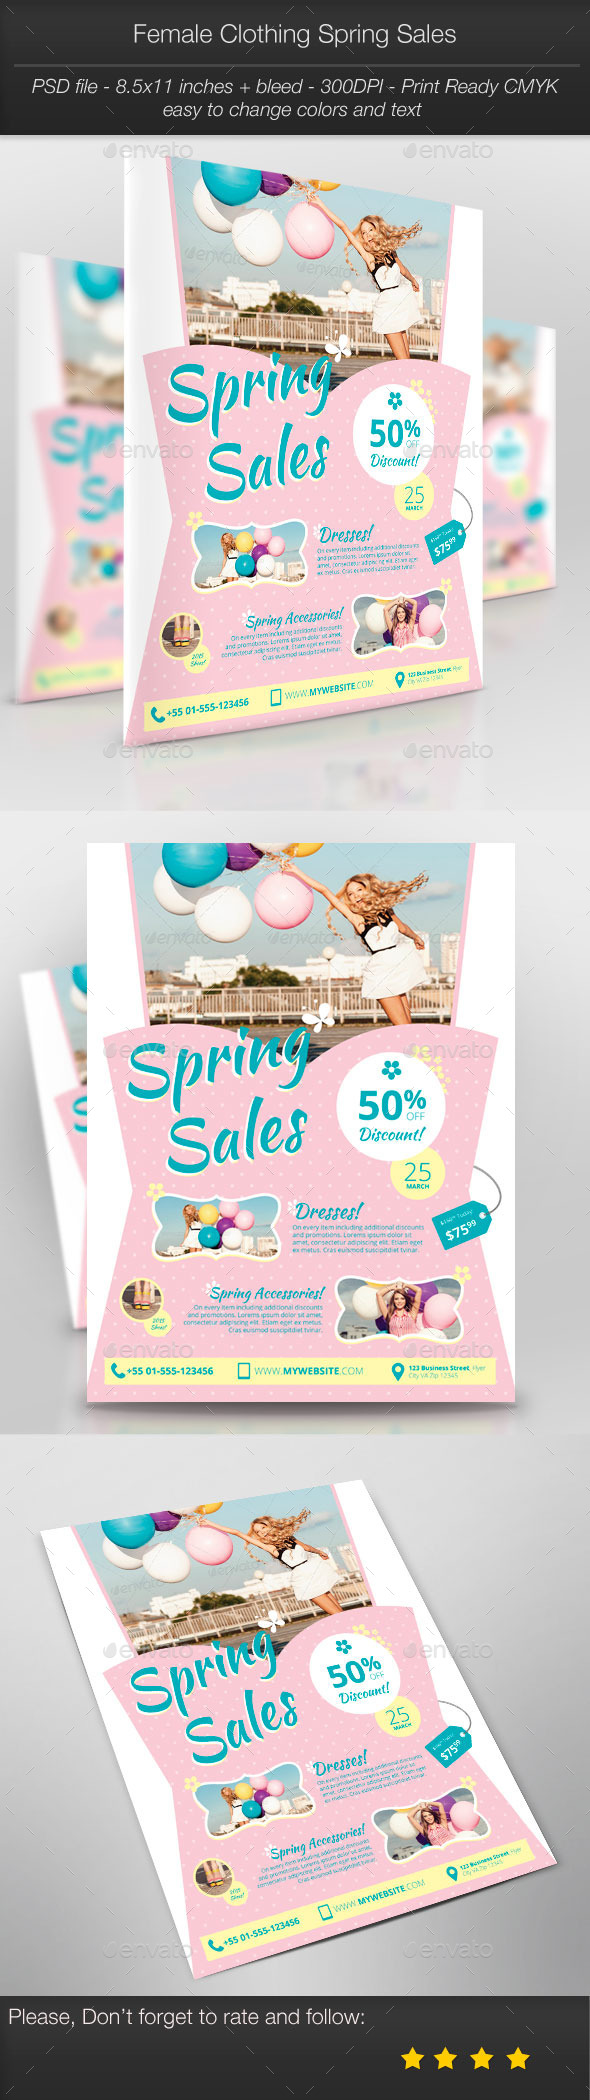 GraphicRiver Business Promotion Female Clothing Spring Sales 10826254